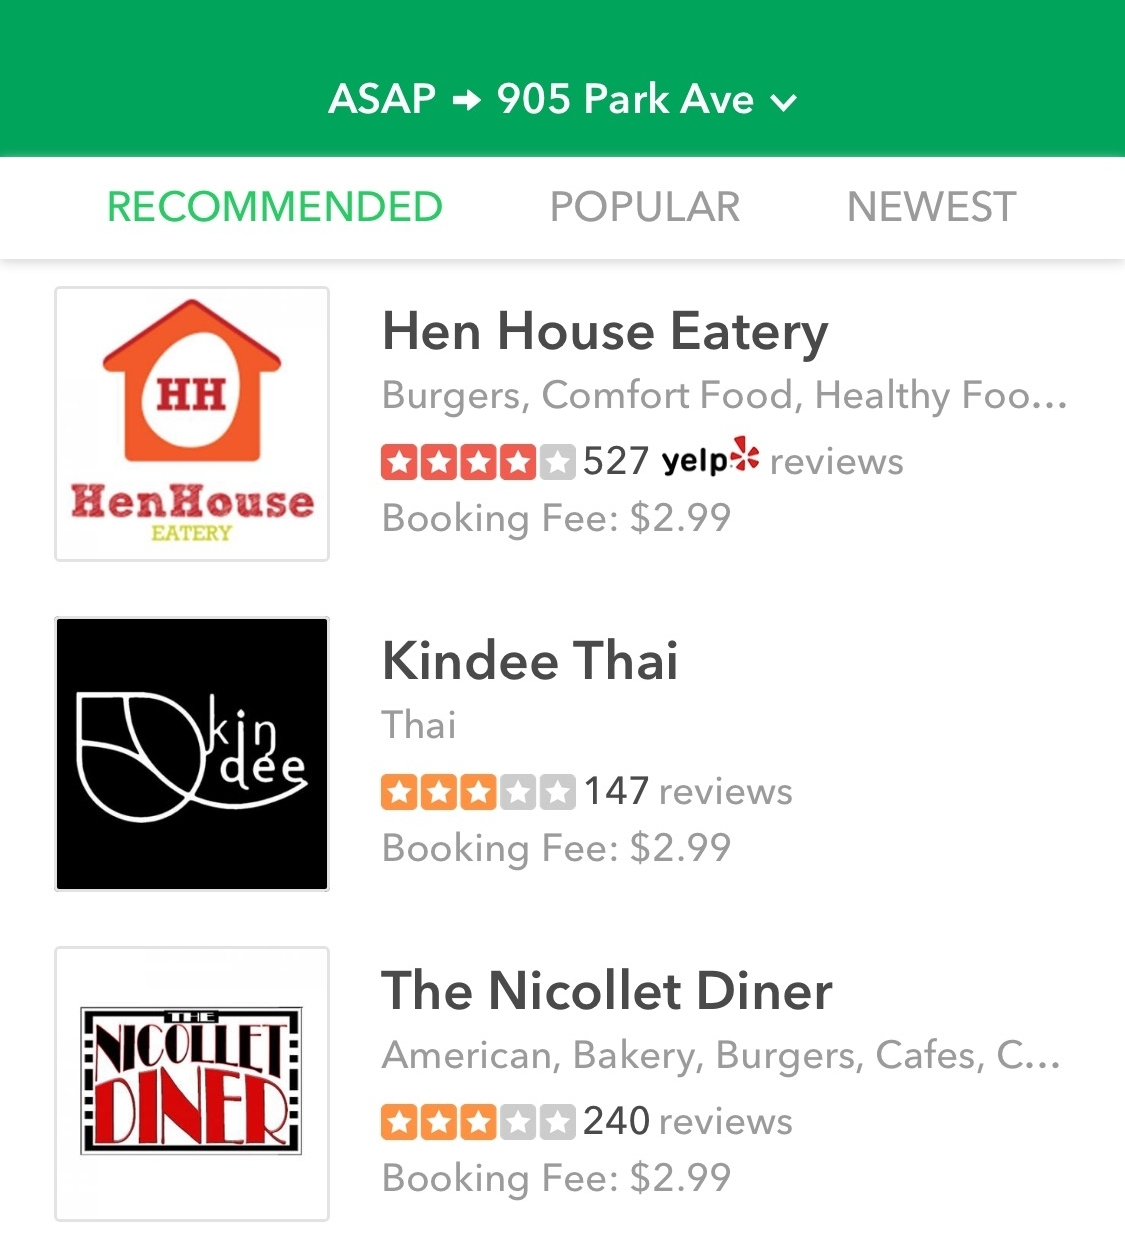 Added Benefit - Our app and website sort restaurants by price, distance and popularity. With this algorithm, lowering your booking fee brings you closer to the top of search results for users in your area. More eyeballs on your menu, means more orders!